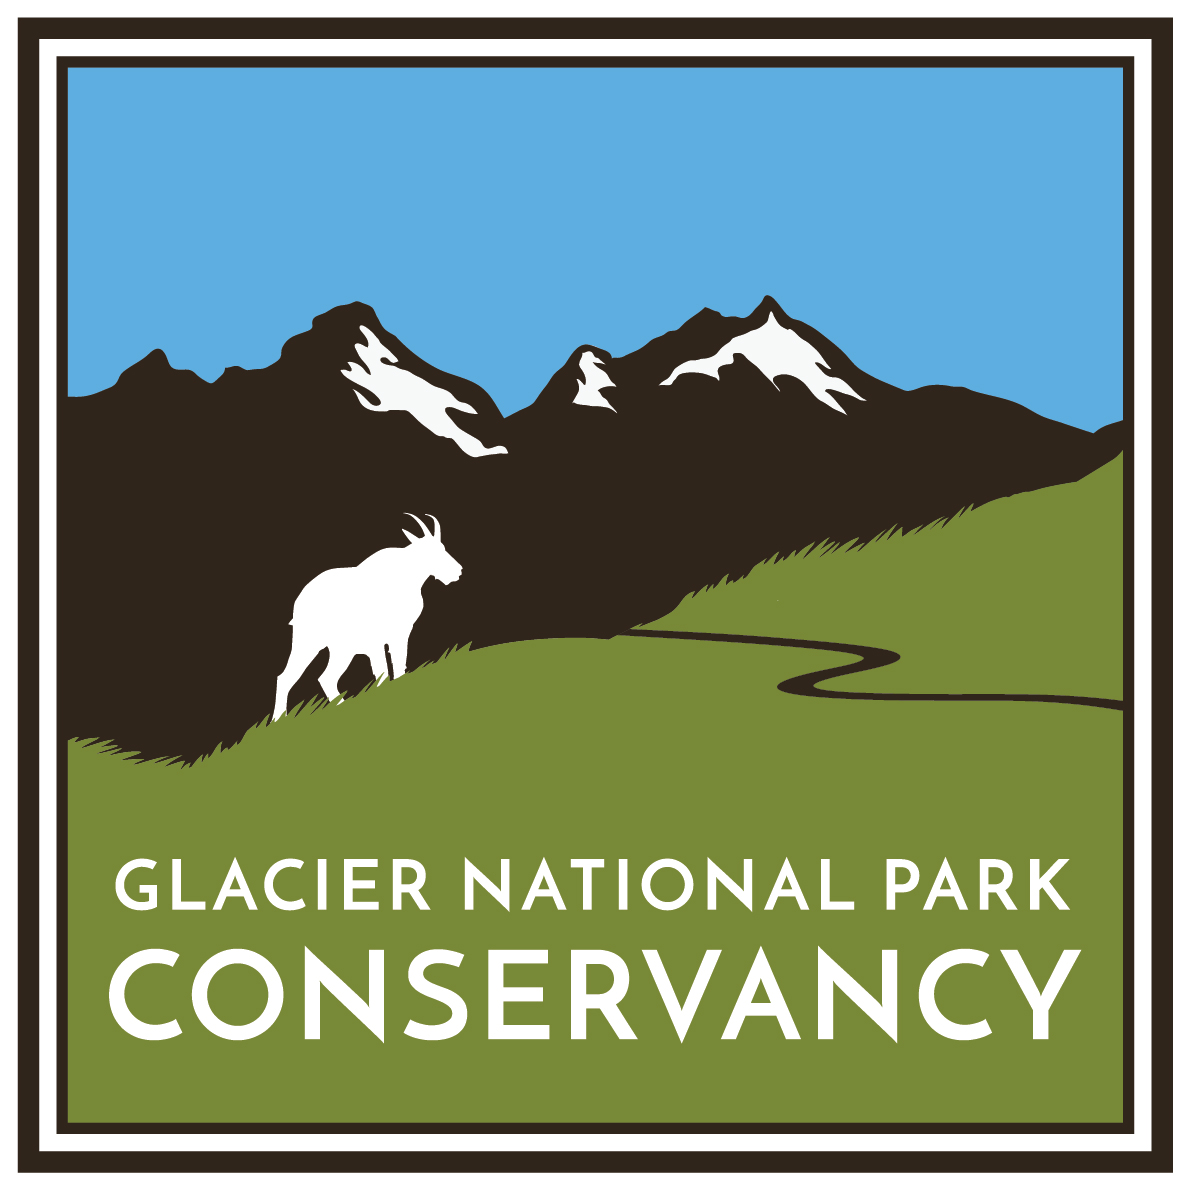 Glacier National Park Conservancy